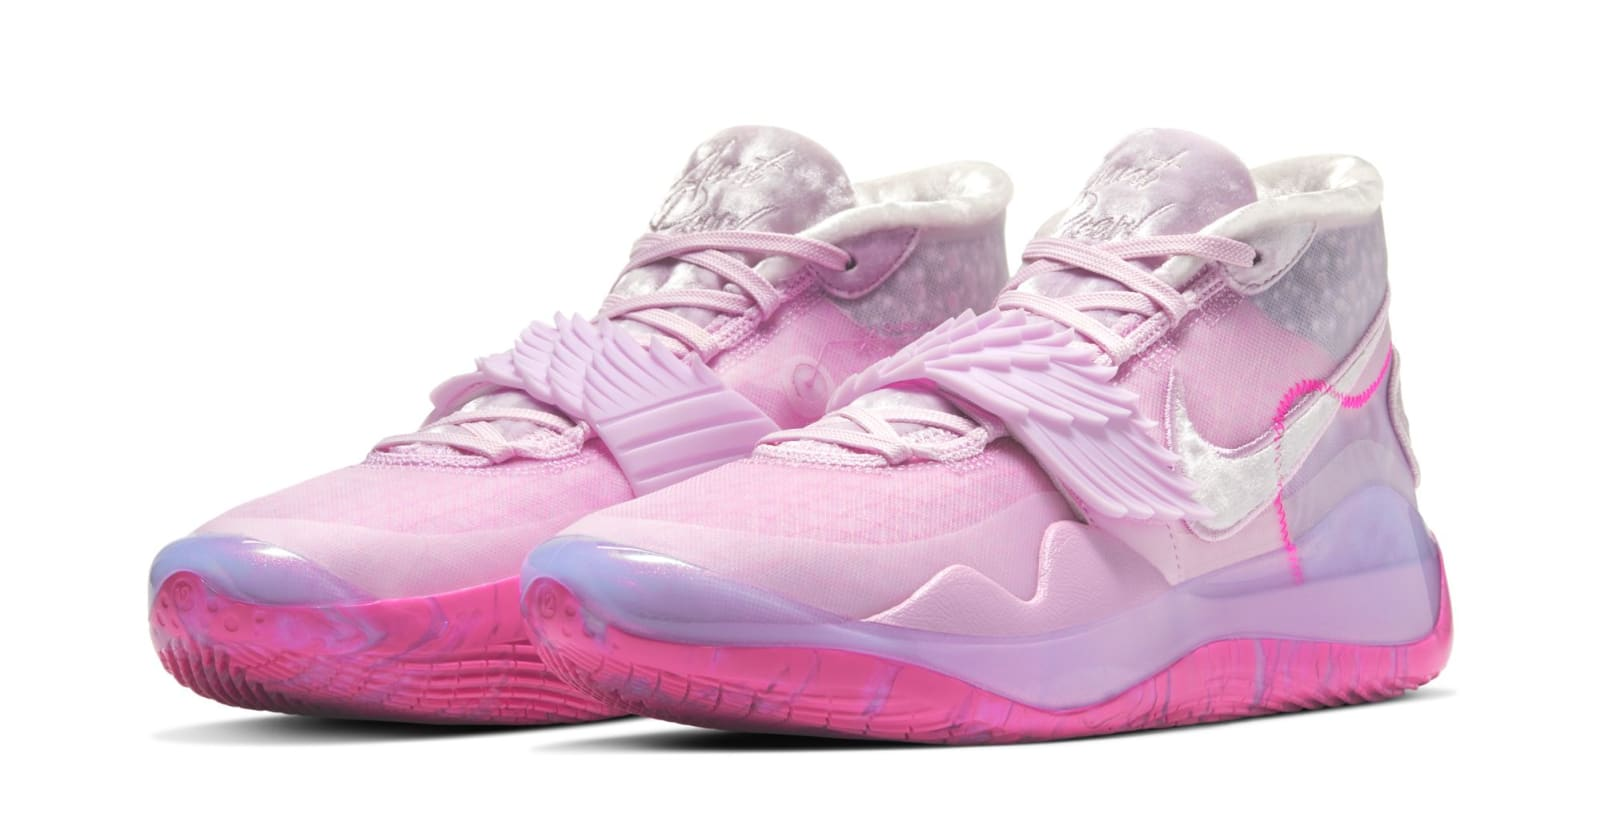 """Nike KD 12 """"Aunt Pearl"""" Release Date Revealed: Official Photos"""